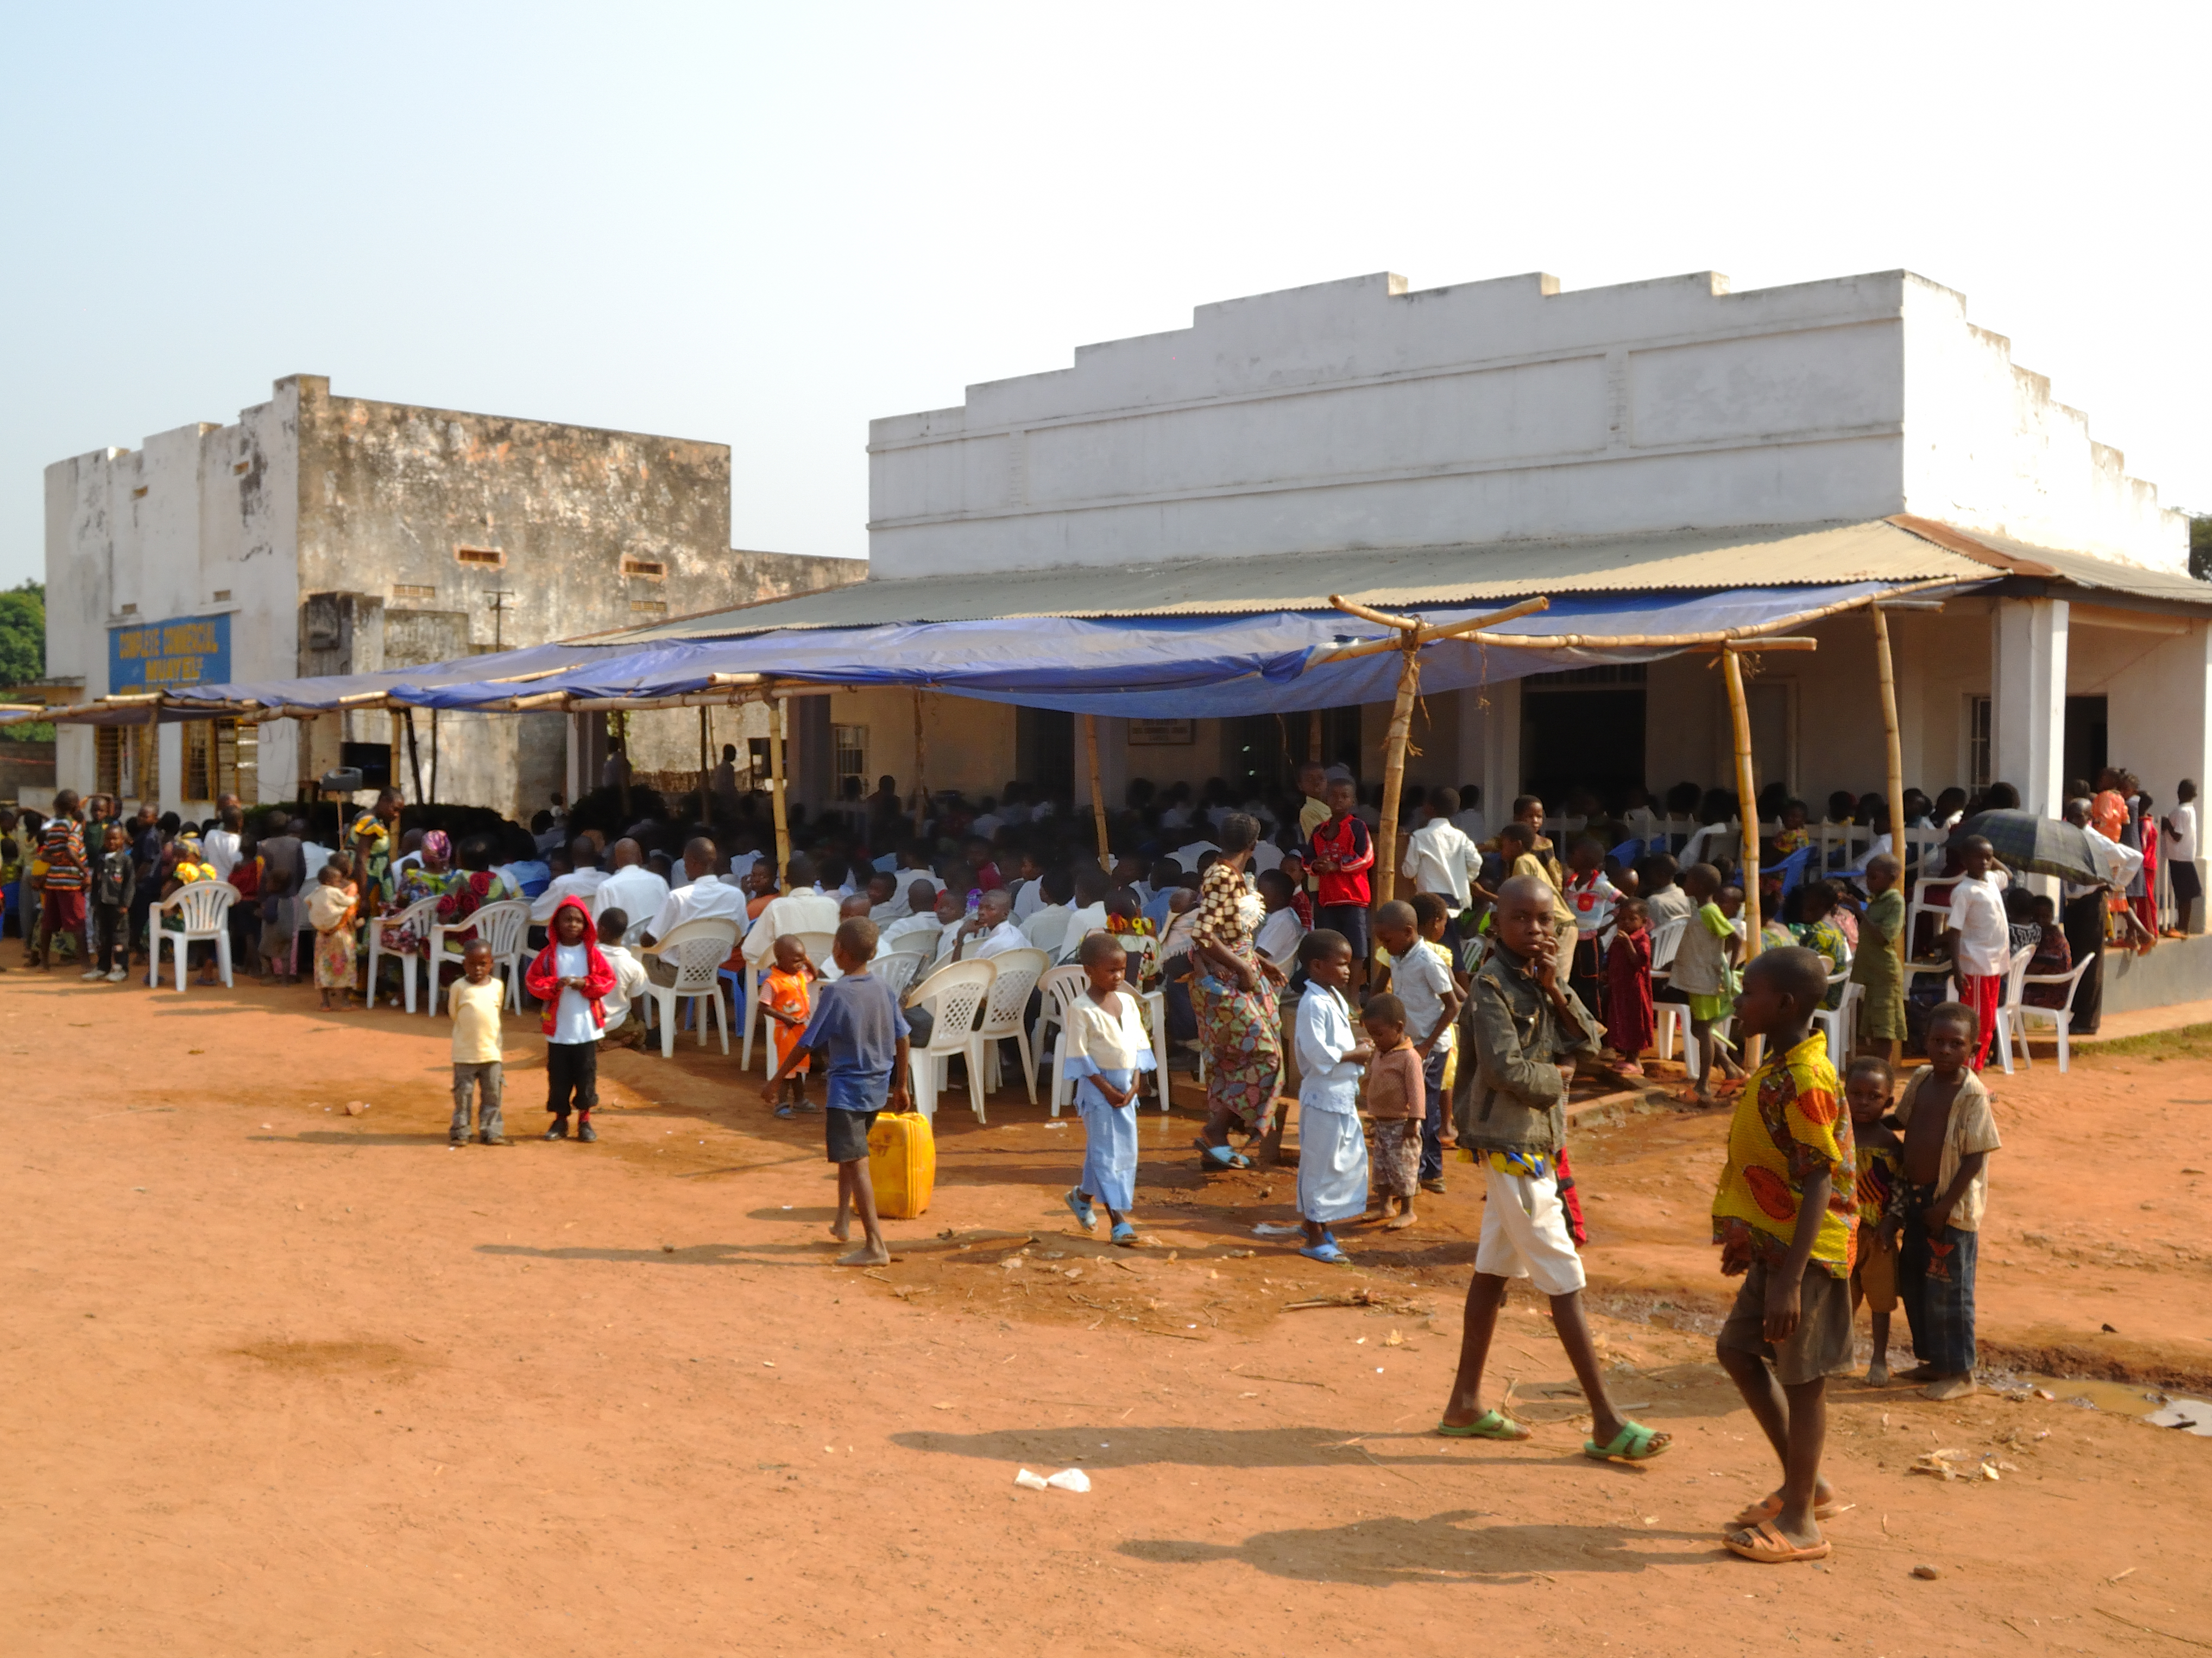 Church members in Luputa, Democratic Republic of the Congo meet at the creation of the tenth Congolese stake in Africa on June 26, 2011.